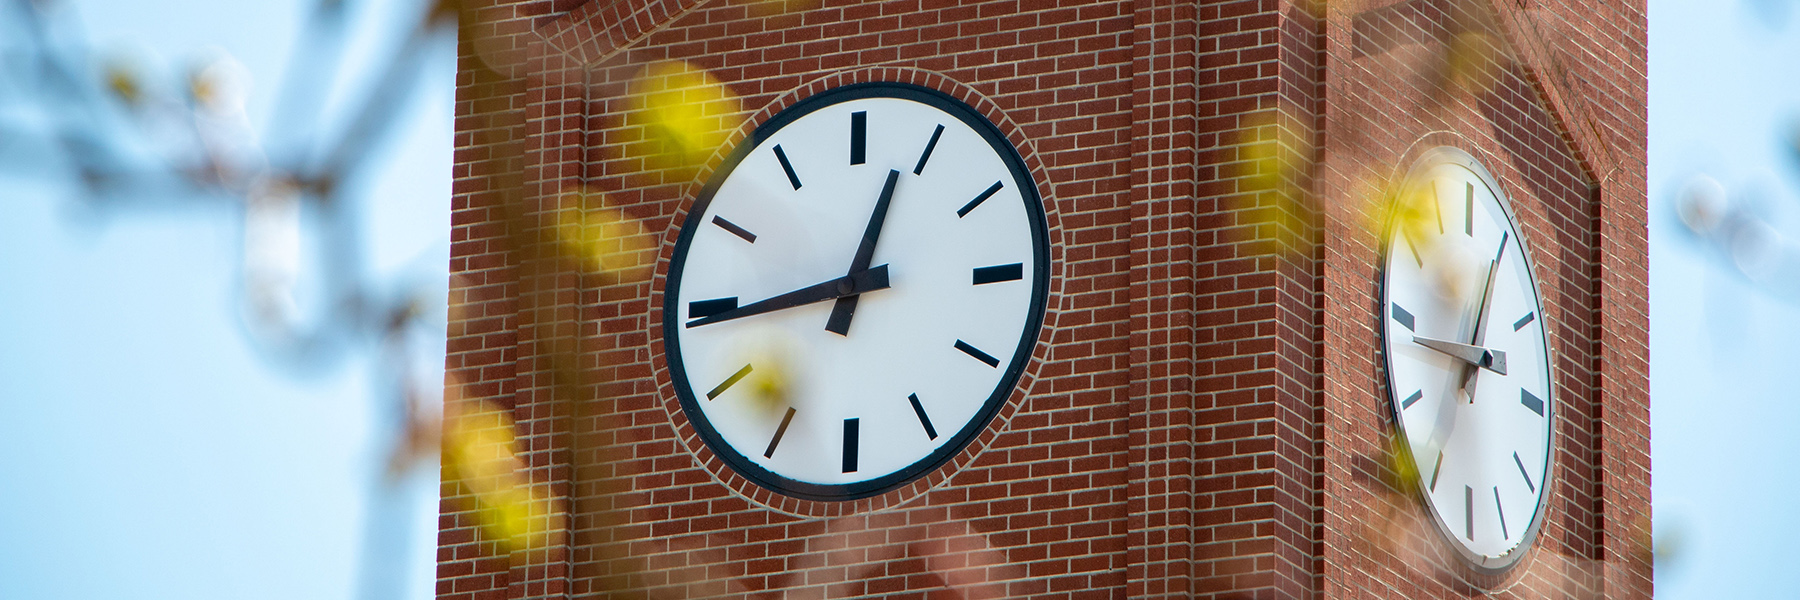 A picture of the SFCC clocktower, zoomed in so you can only see the watch faces and the brick. It's sunny out and the sky is blue behind the tower.